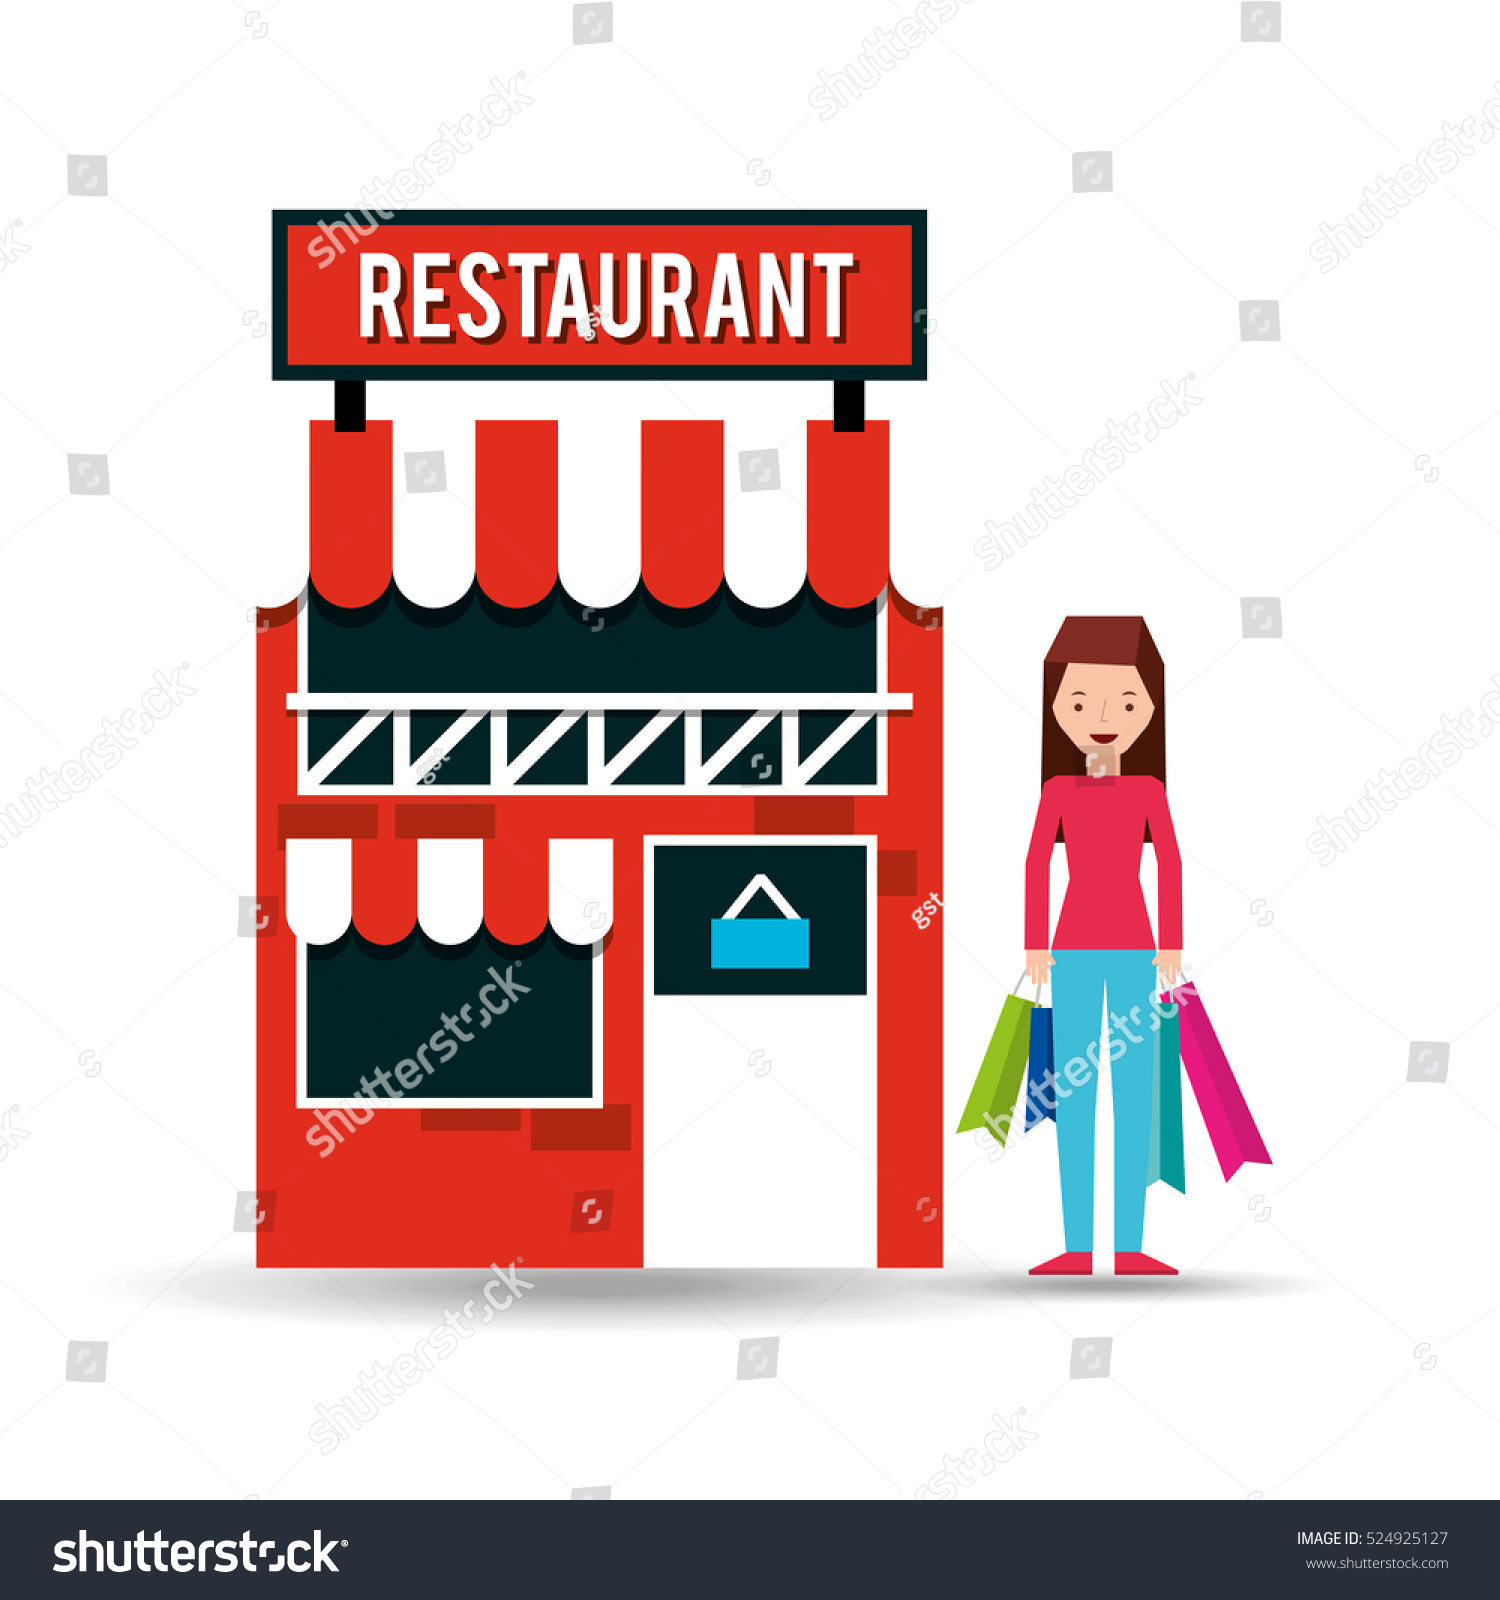 For restaurant pictures graphics illustrations clipart photos - Girl Restaurant Shopping Gift Buying Vector Illustration Eps 10